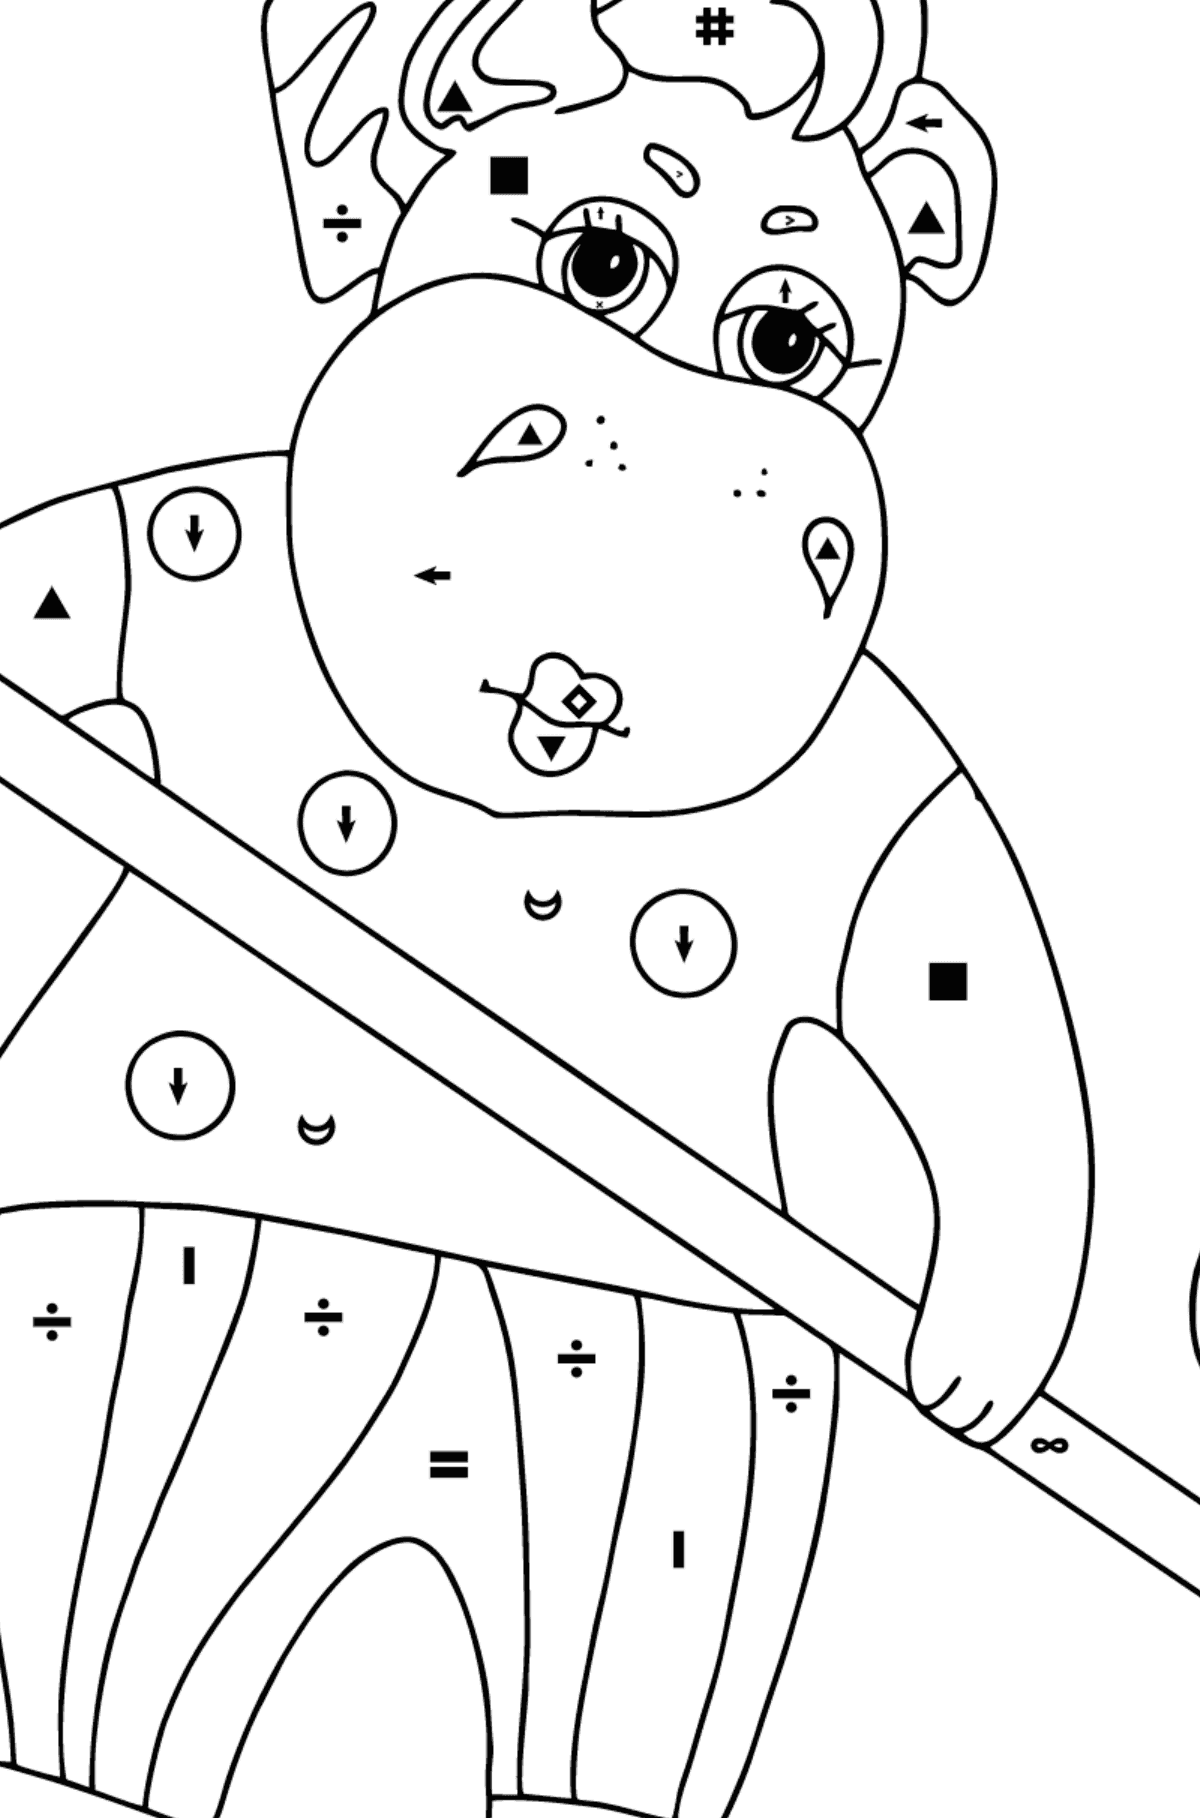 Coloring Page - A Hippo is Sweeping Autumn Leaves for Children  - Color by Special Symbols